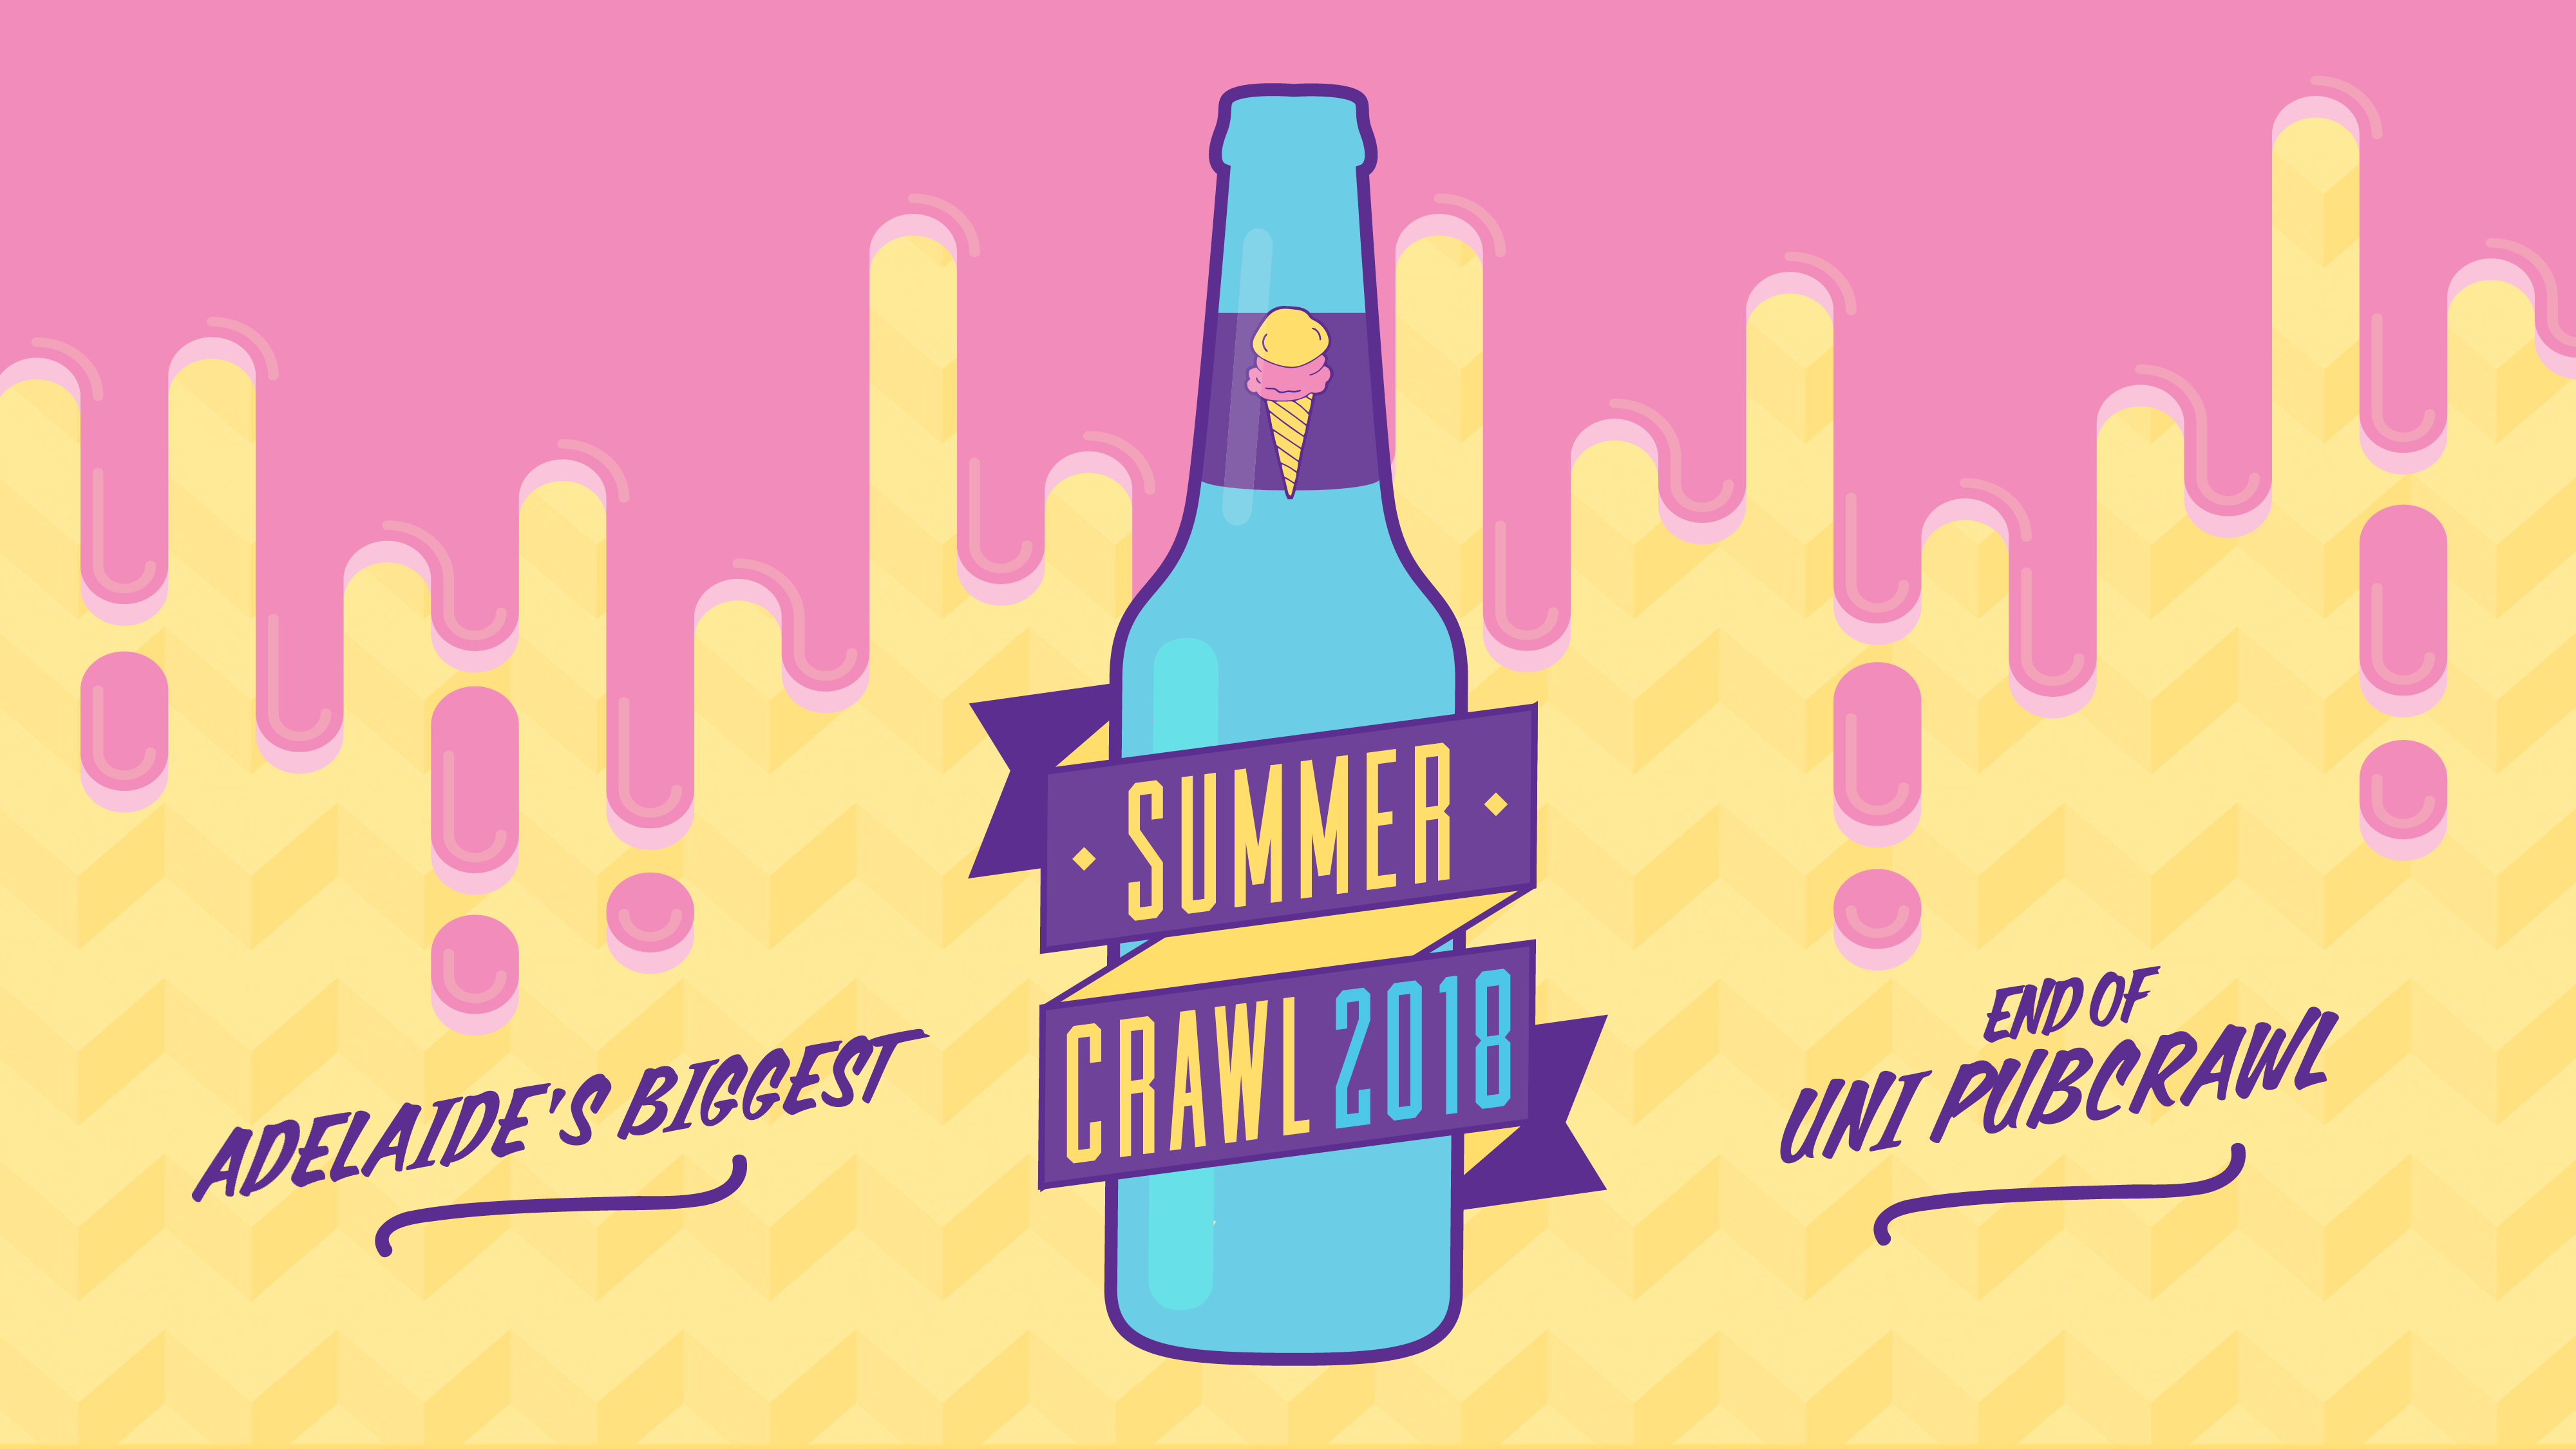 Summercrawl 2016